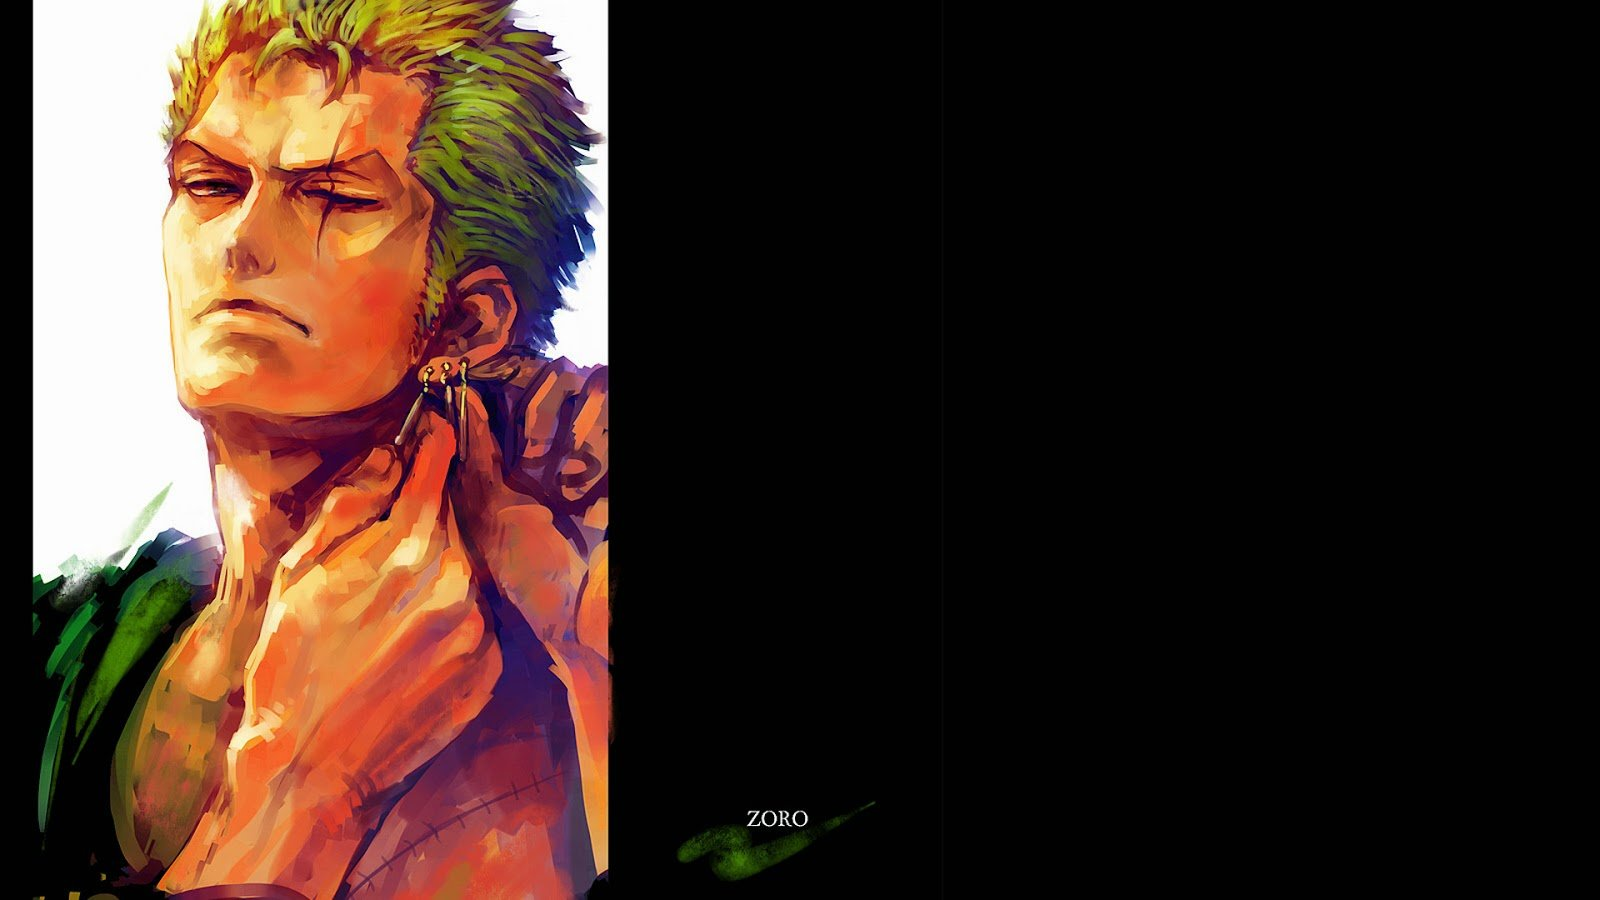 One Piece Onepiece wallpaper after 2 years zoro wallpapers hd 1600x900